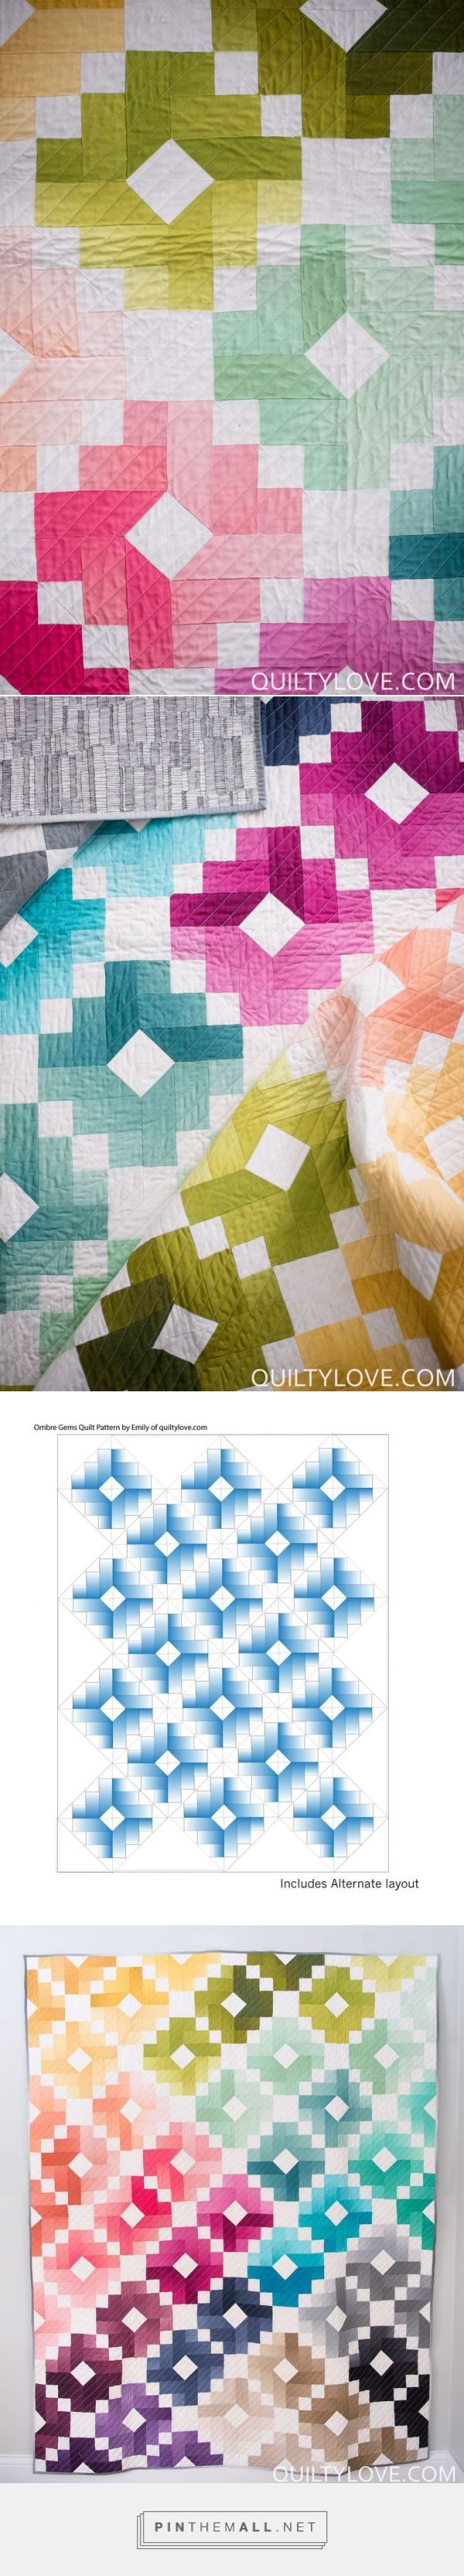 1000+ gambar tentang 5 PATCHWORK di Pinterest | Membuat selimut, Quilt festival, dan Pola selimut... - a grouped images picture - Pin Them All